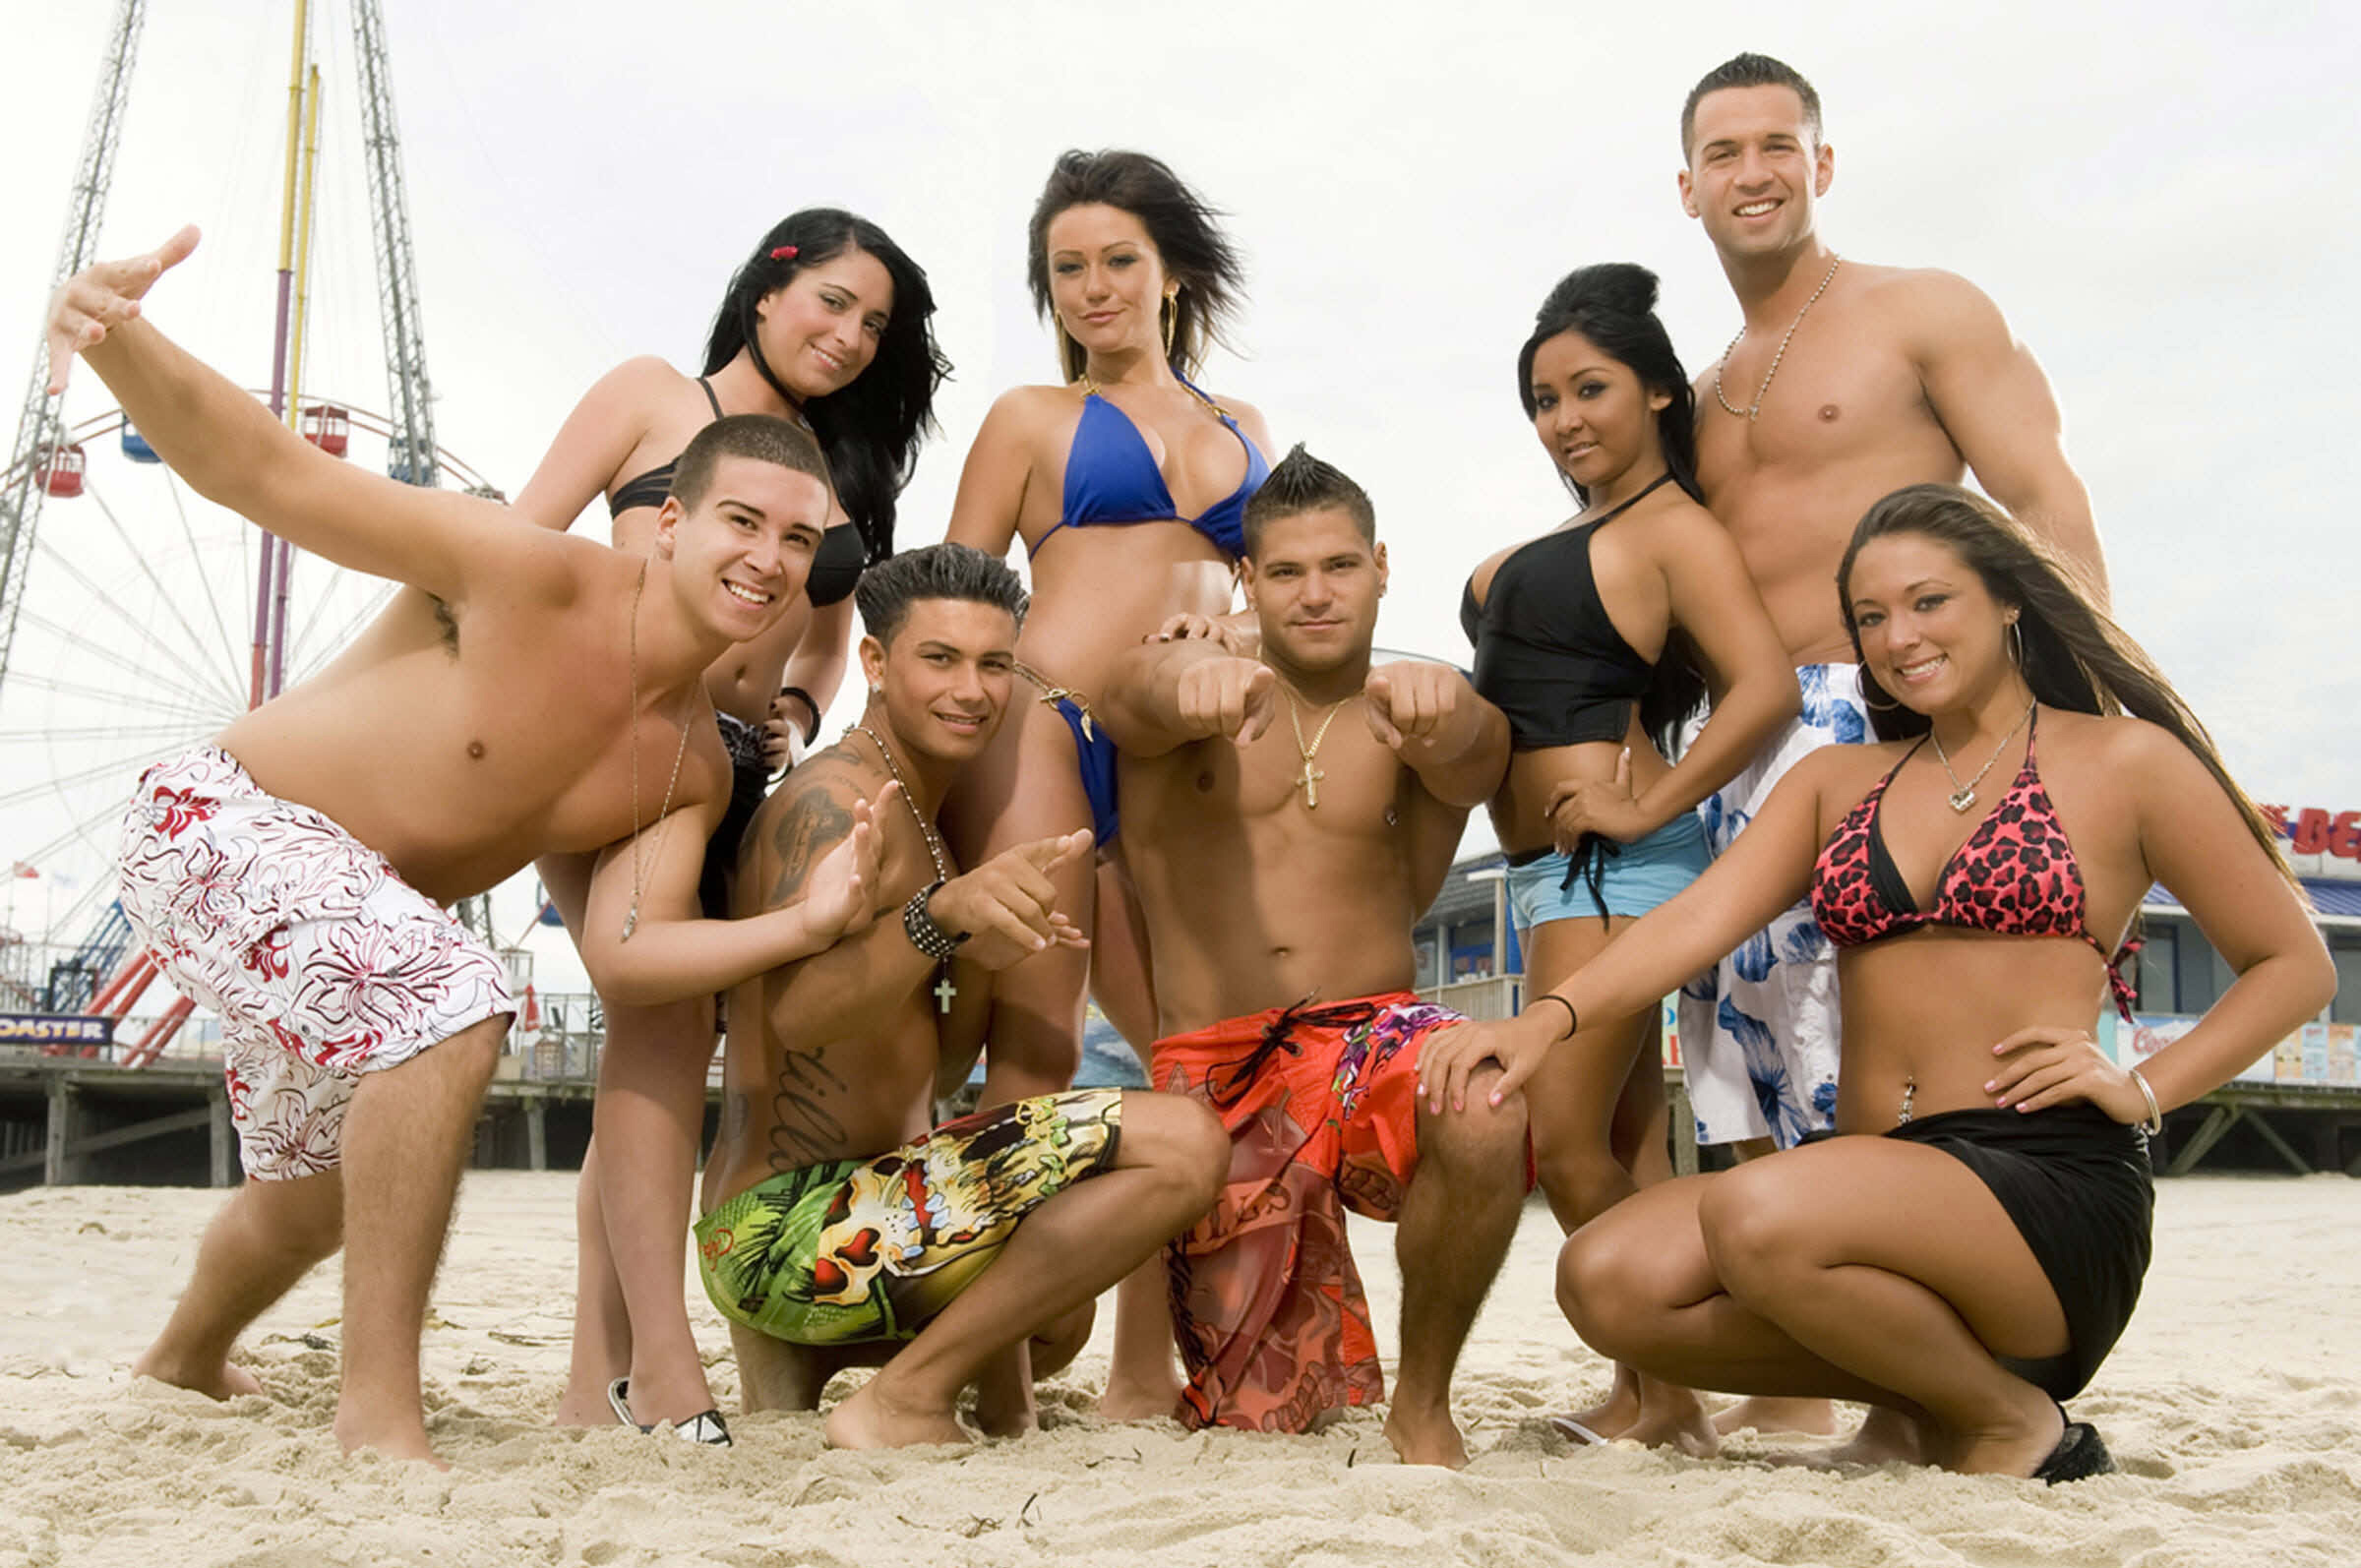 Jersey Shore cast - Where are they now? | Gallery | Wonderwall.com